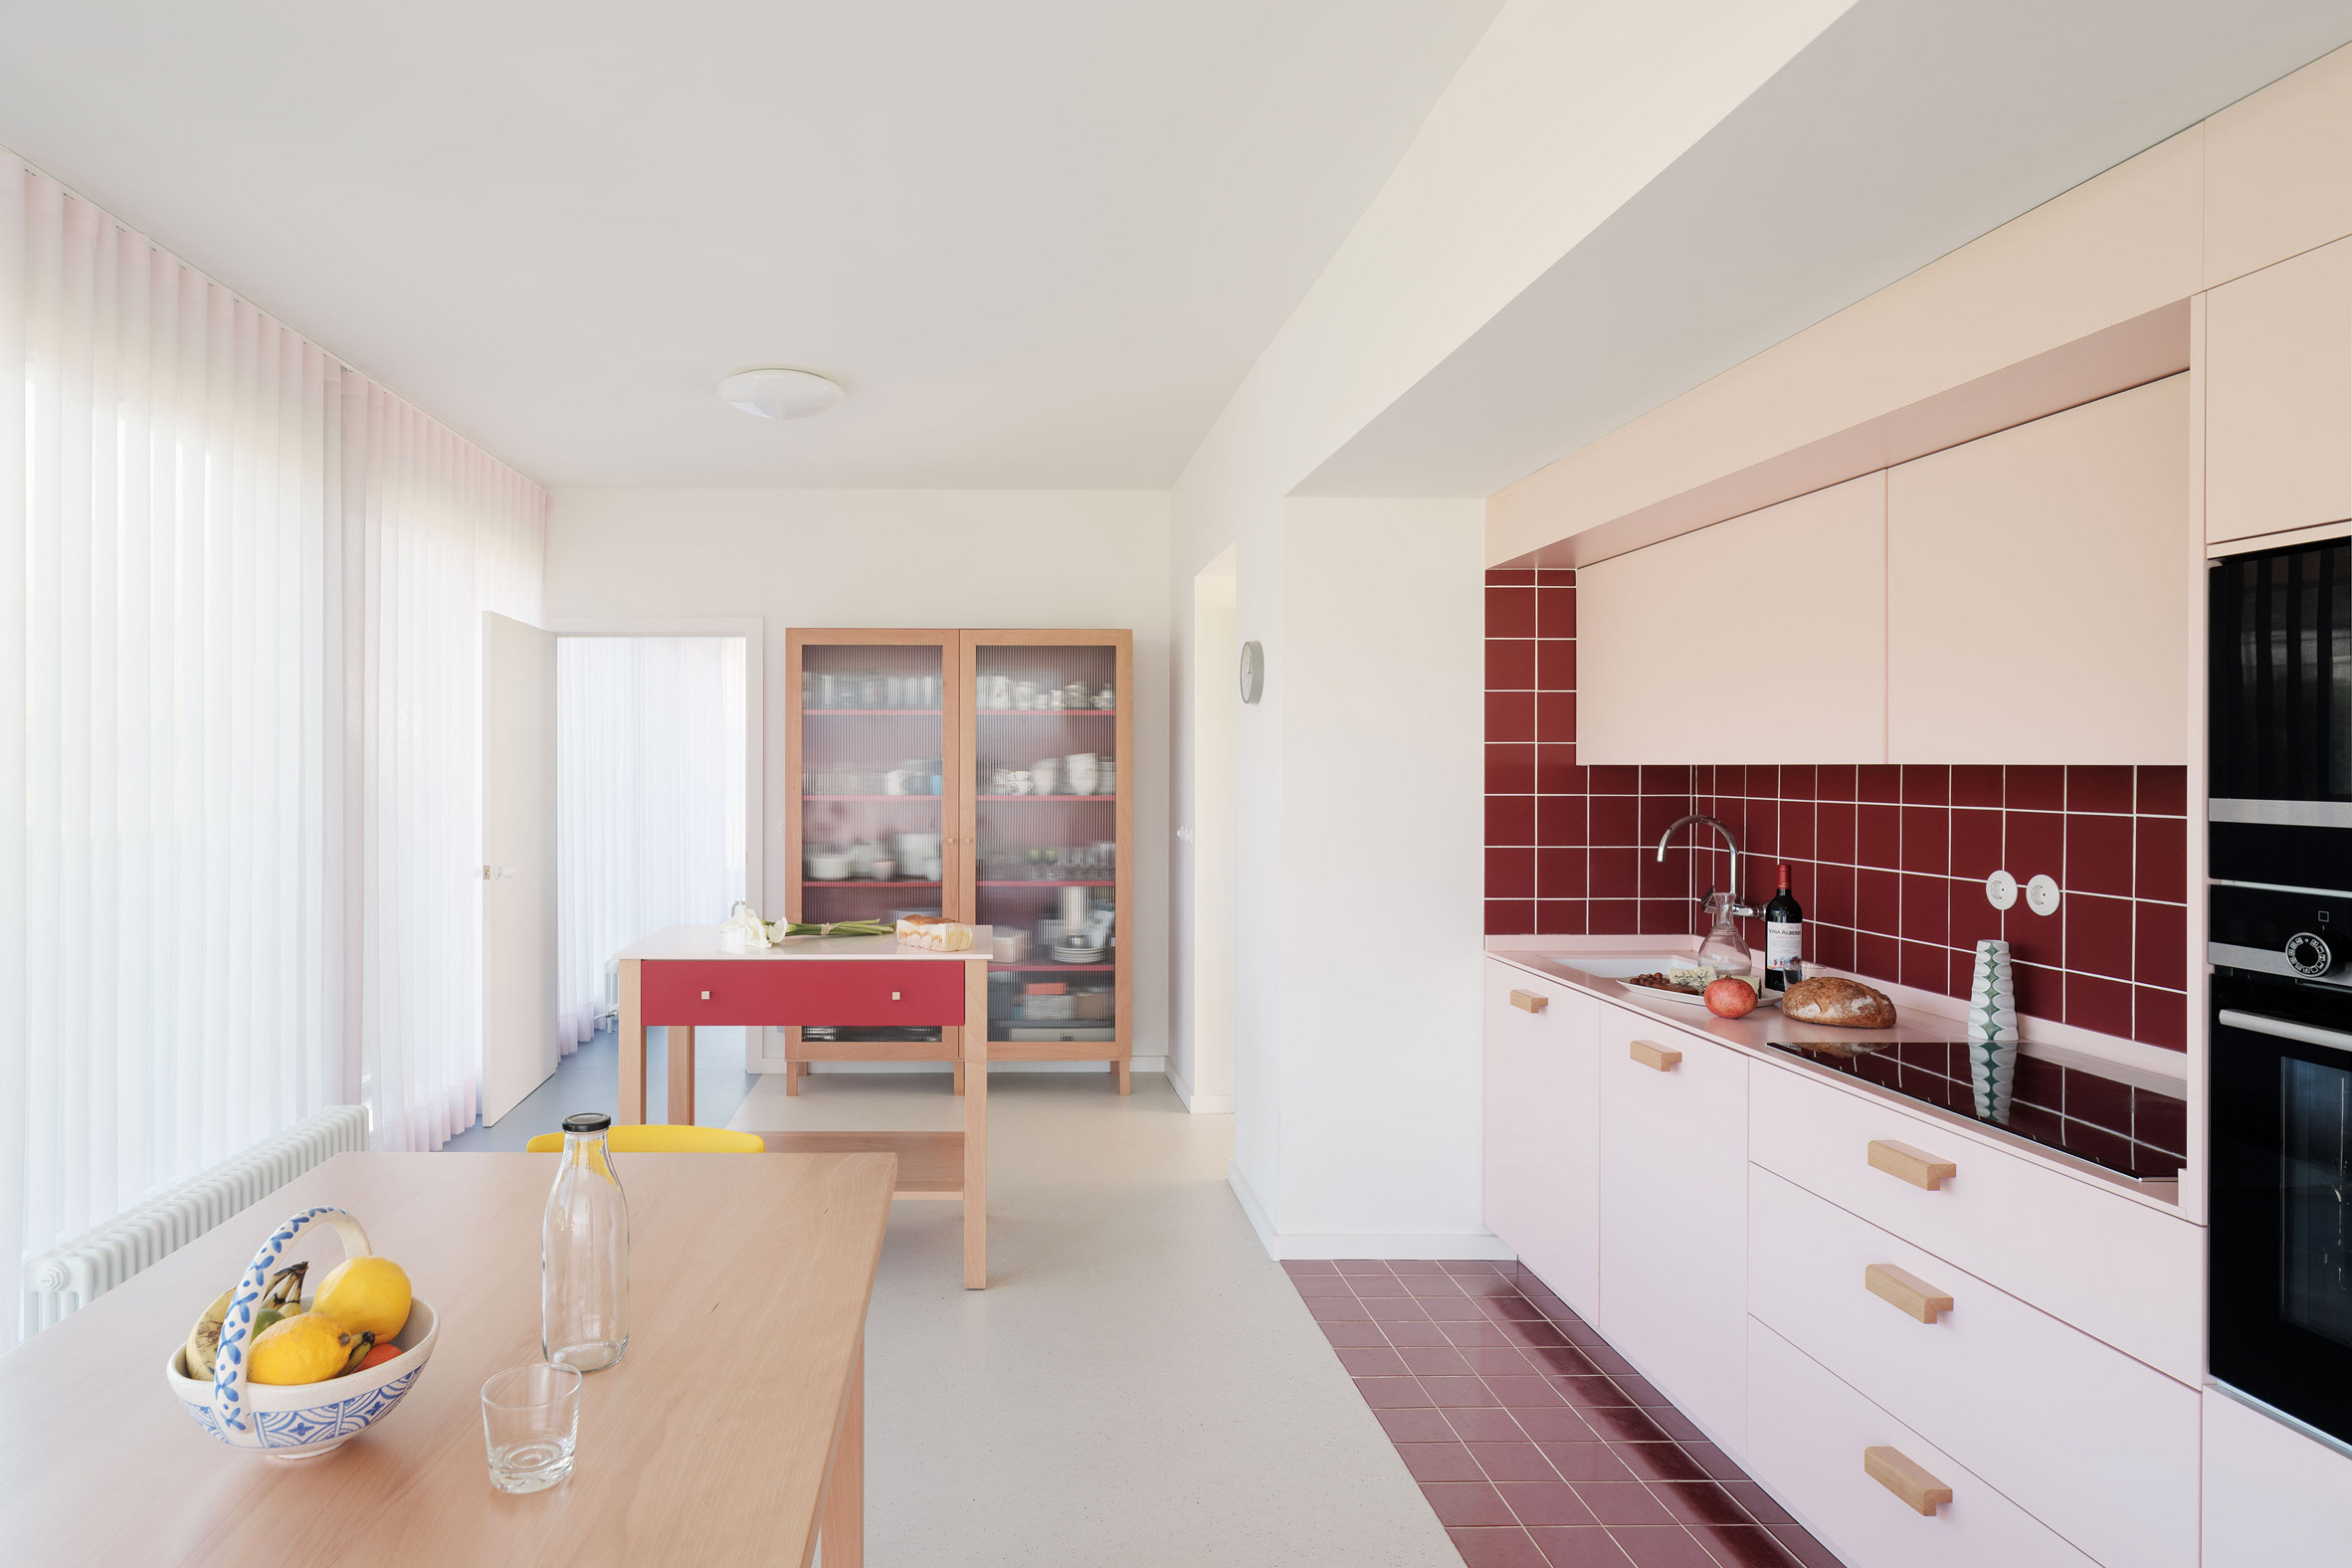 Kitchen in a Spanish home